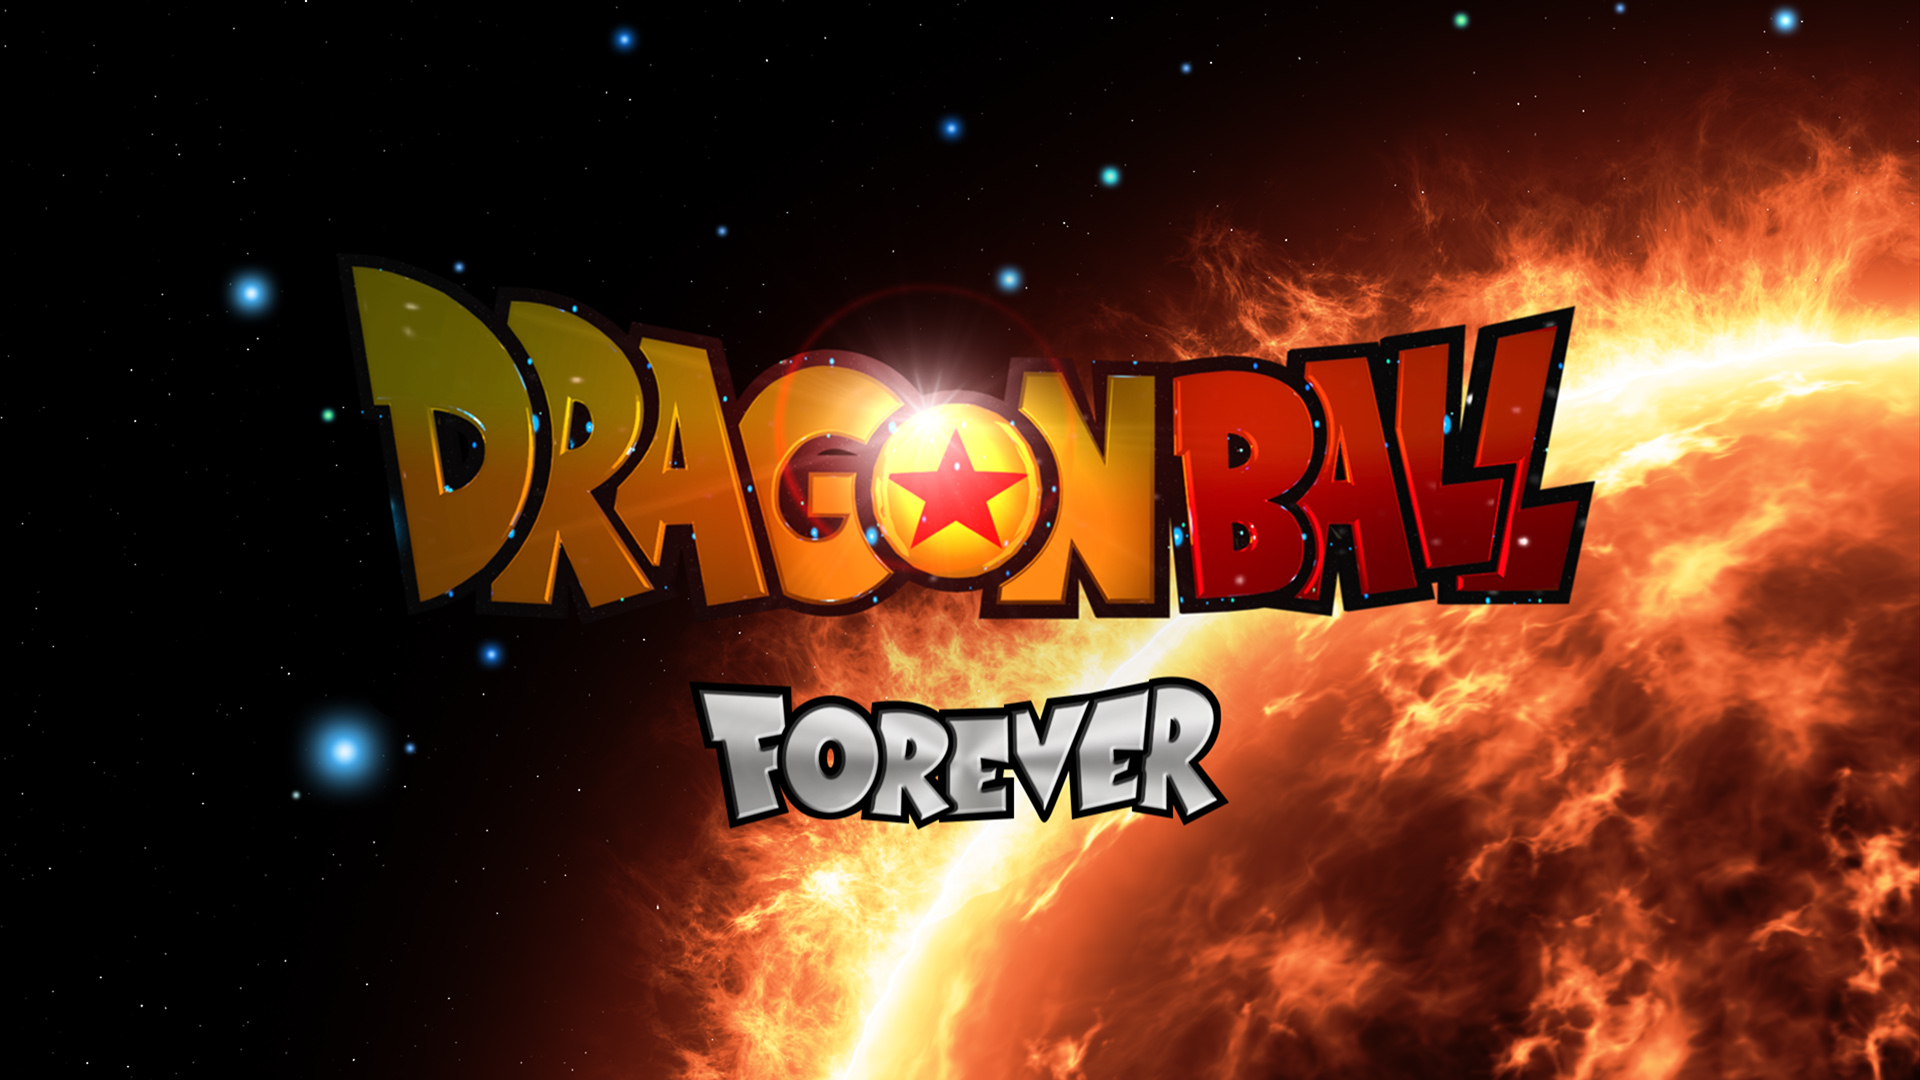 Dragon Ball Tittle HD